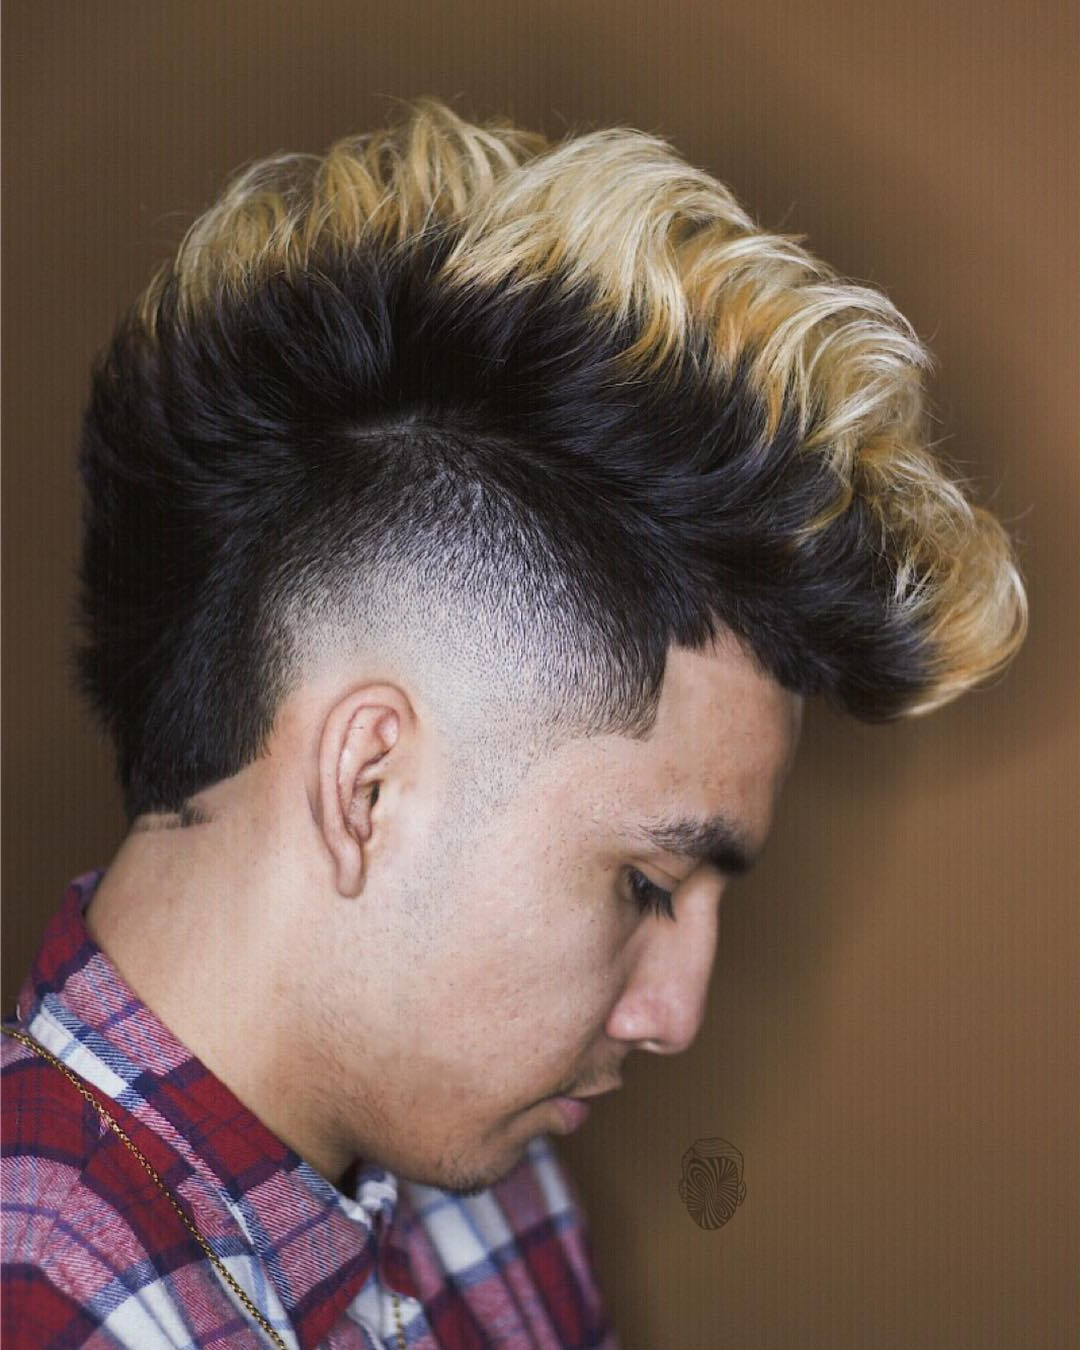 Mohawk Fade Haircut: A New Take On The 'hawk With 2021 Fancy Mohawk Haircuts (View 10 of 20)